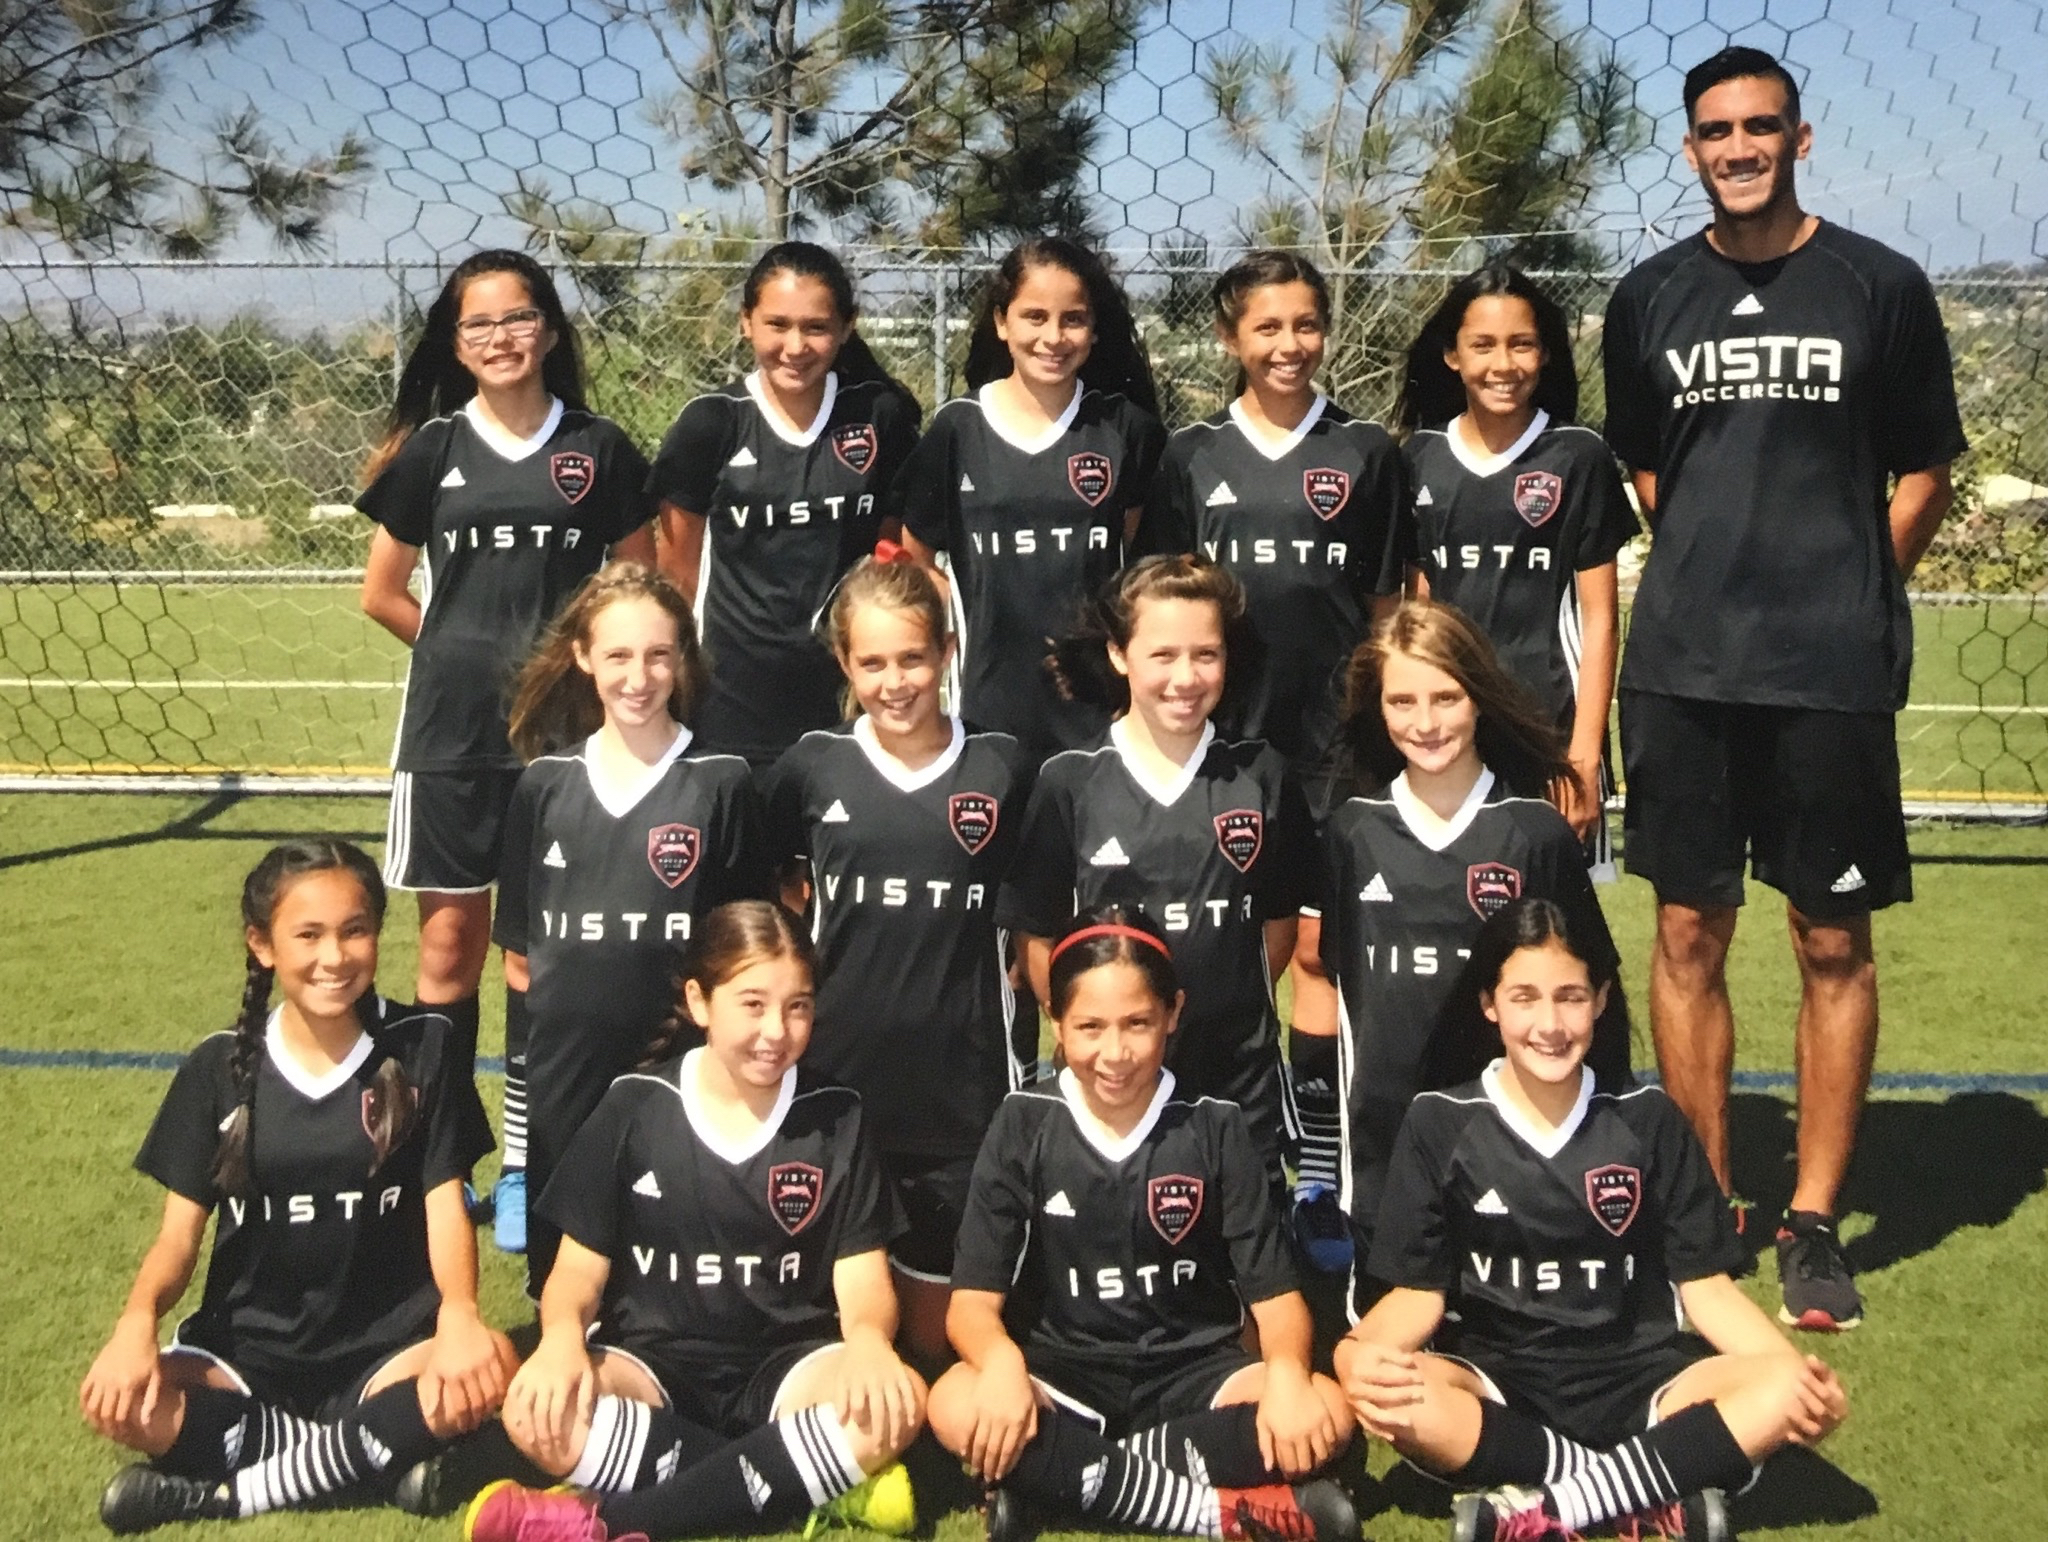 2006 GIRLS ARE PRESIDIO CHAMPIONS